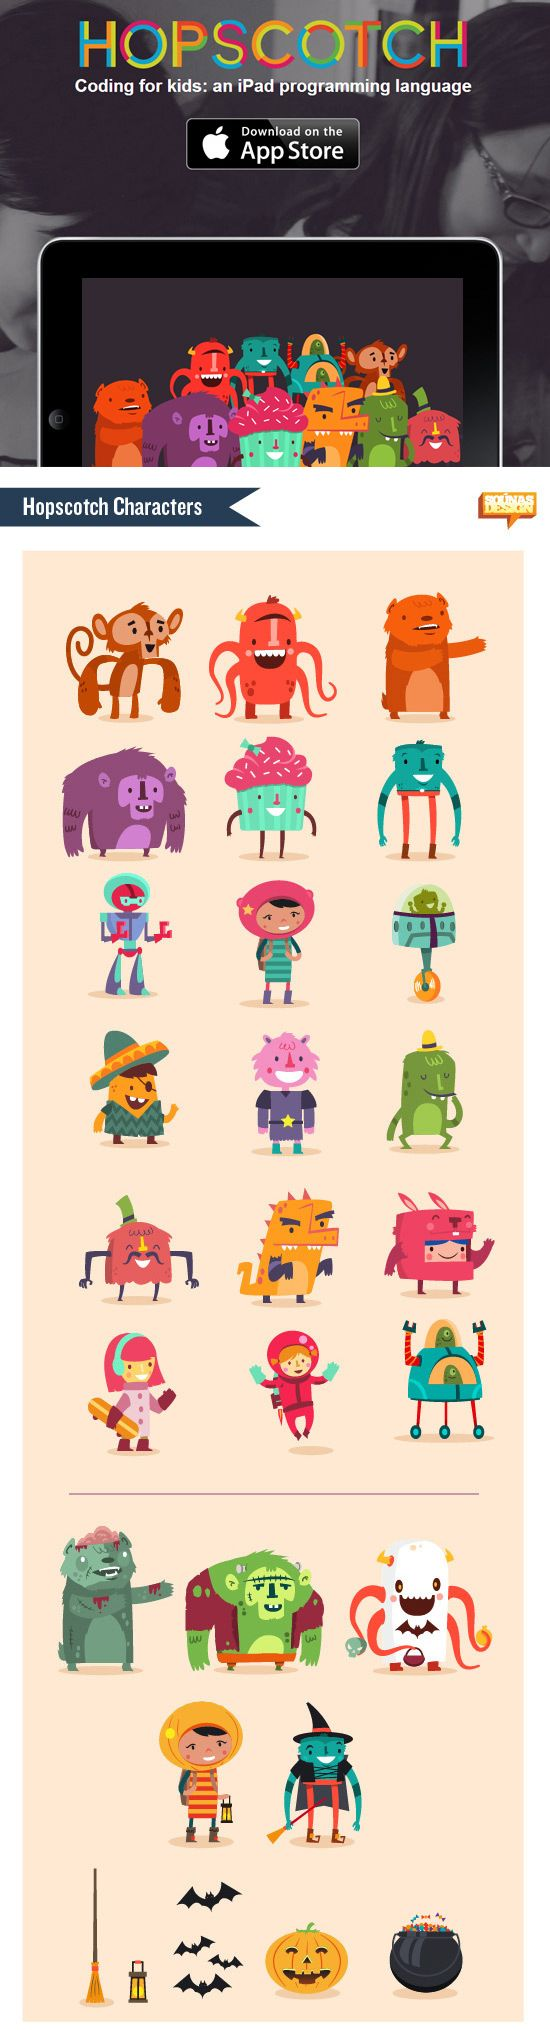 :::Hopscotch characters::: on Character Design Served